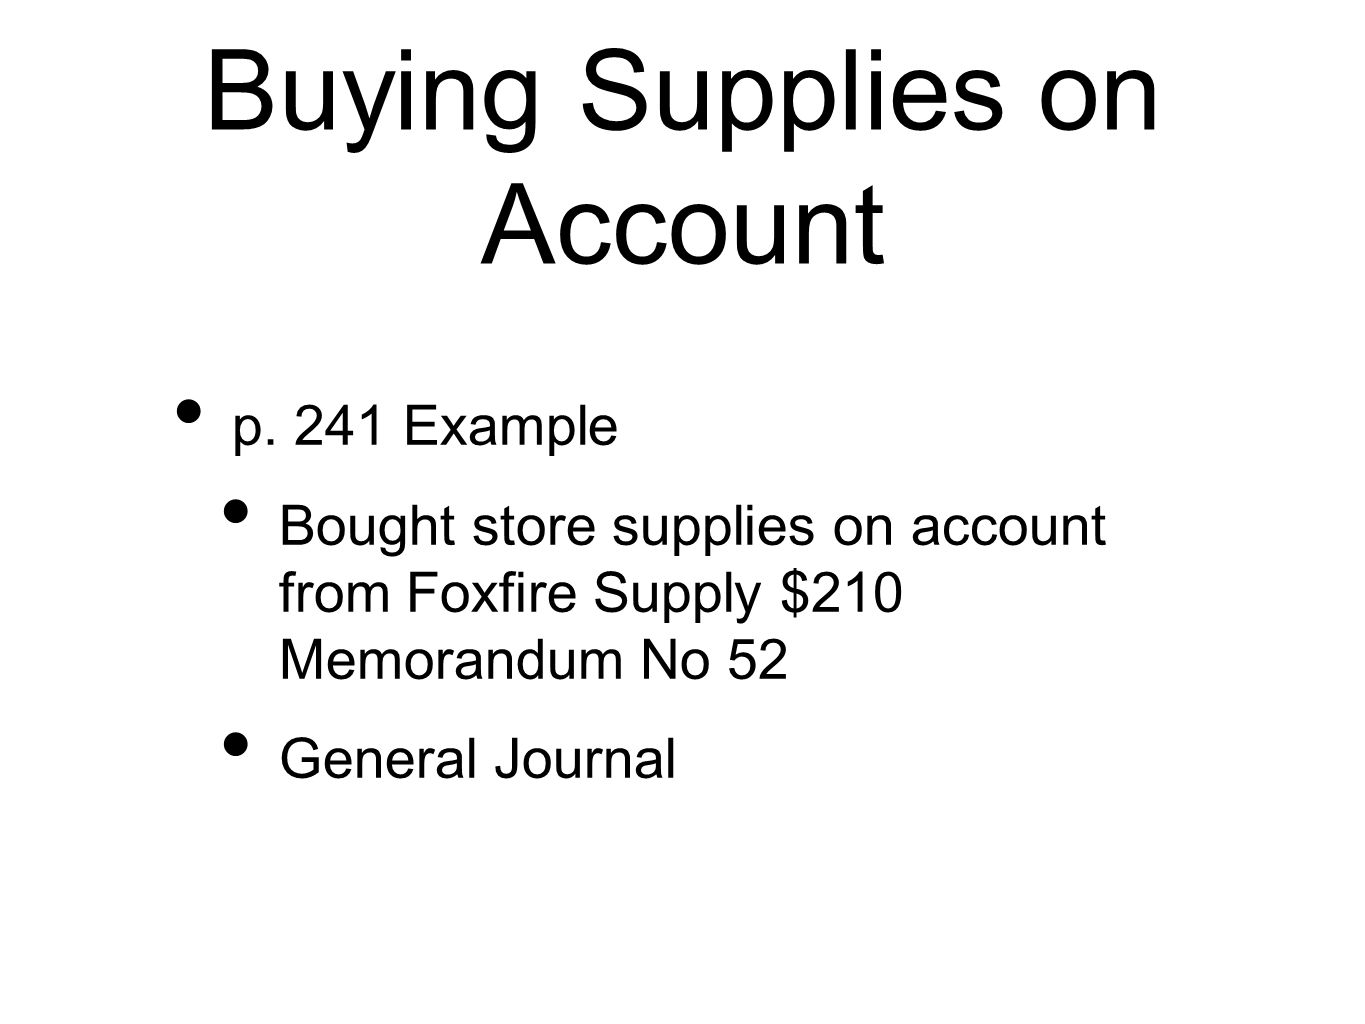 Buying Supplies on Account p. 241 Example Bought store supplies on account from Foxfire Supply $210 Memorandum No 52 General Journal